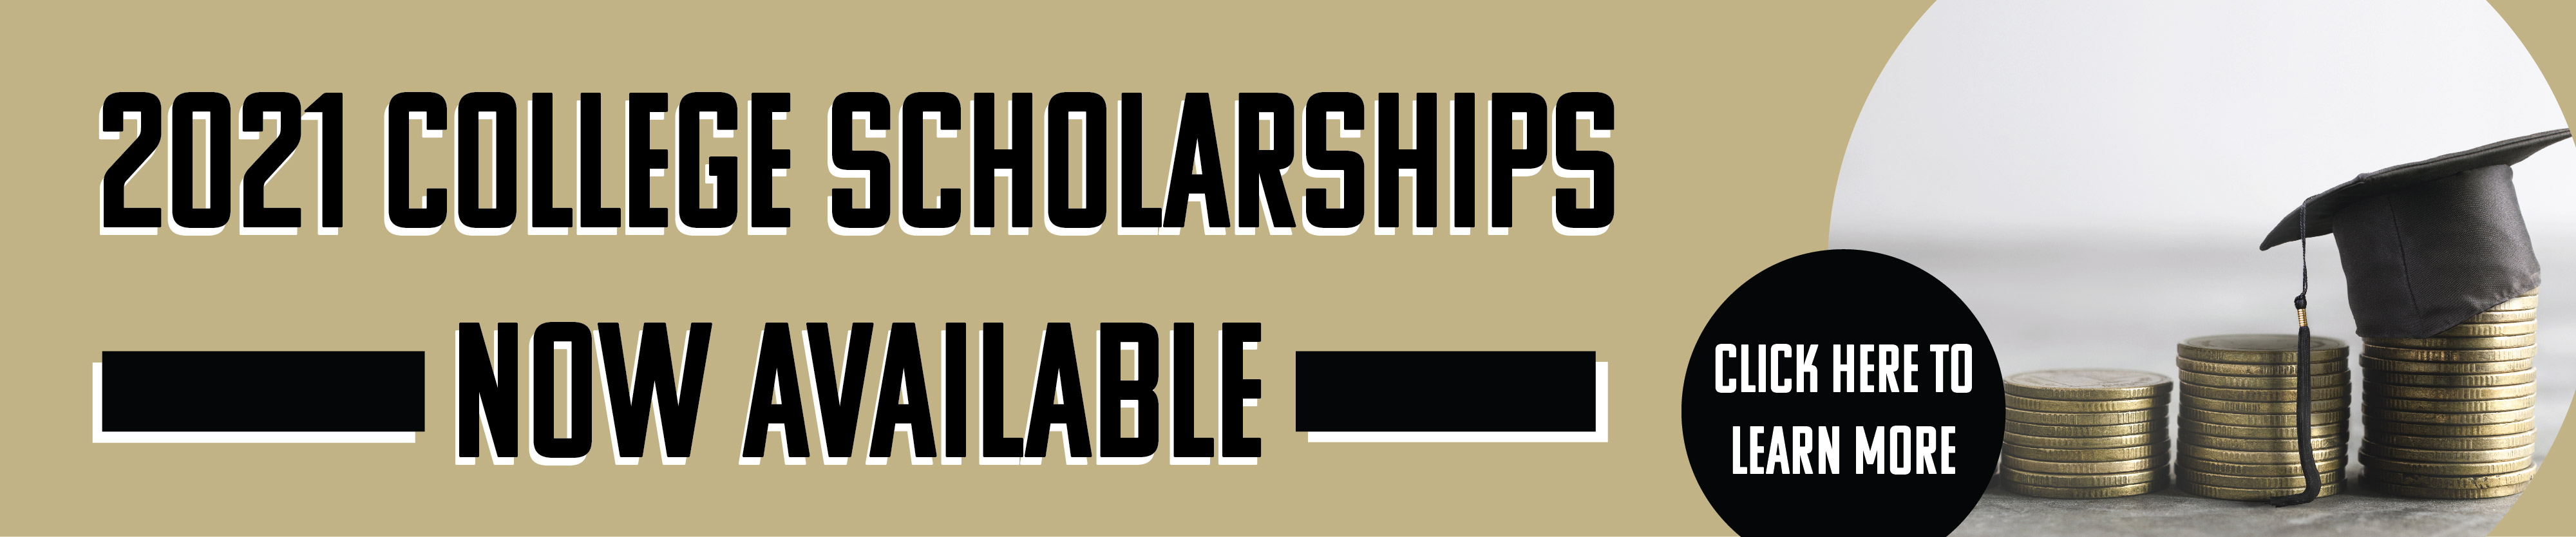 2021College Scholarships Now available